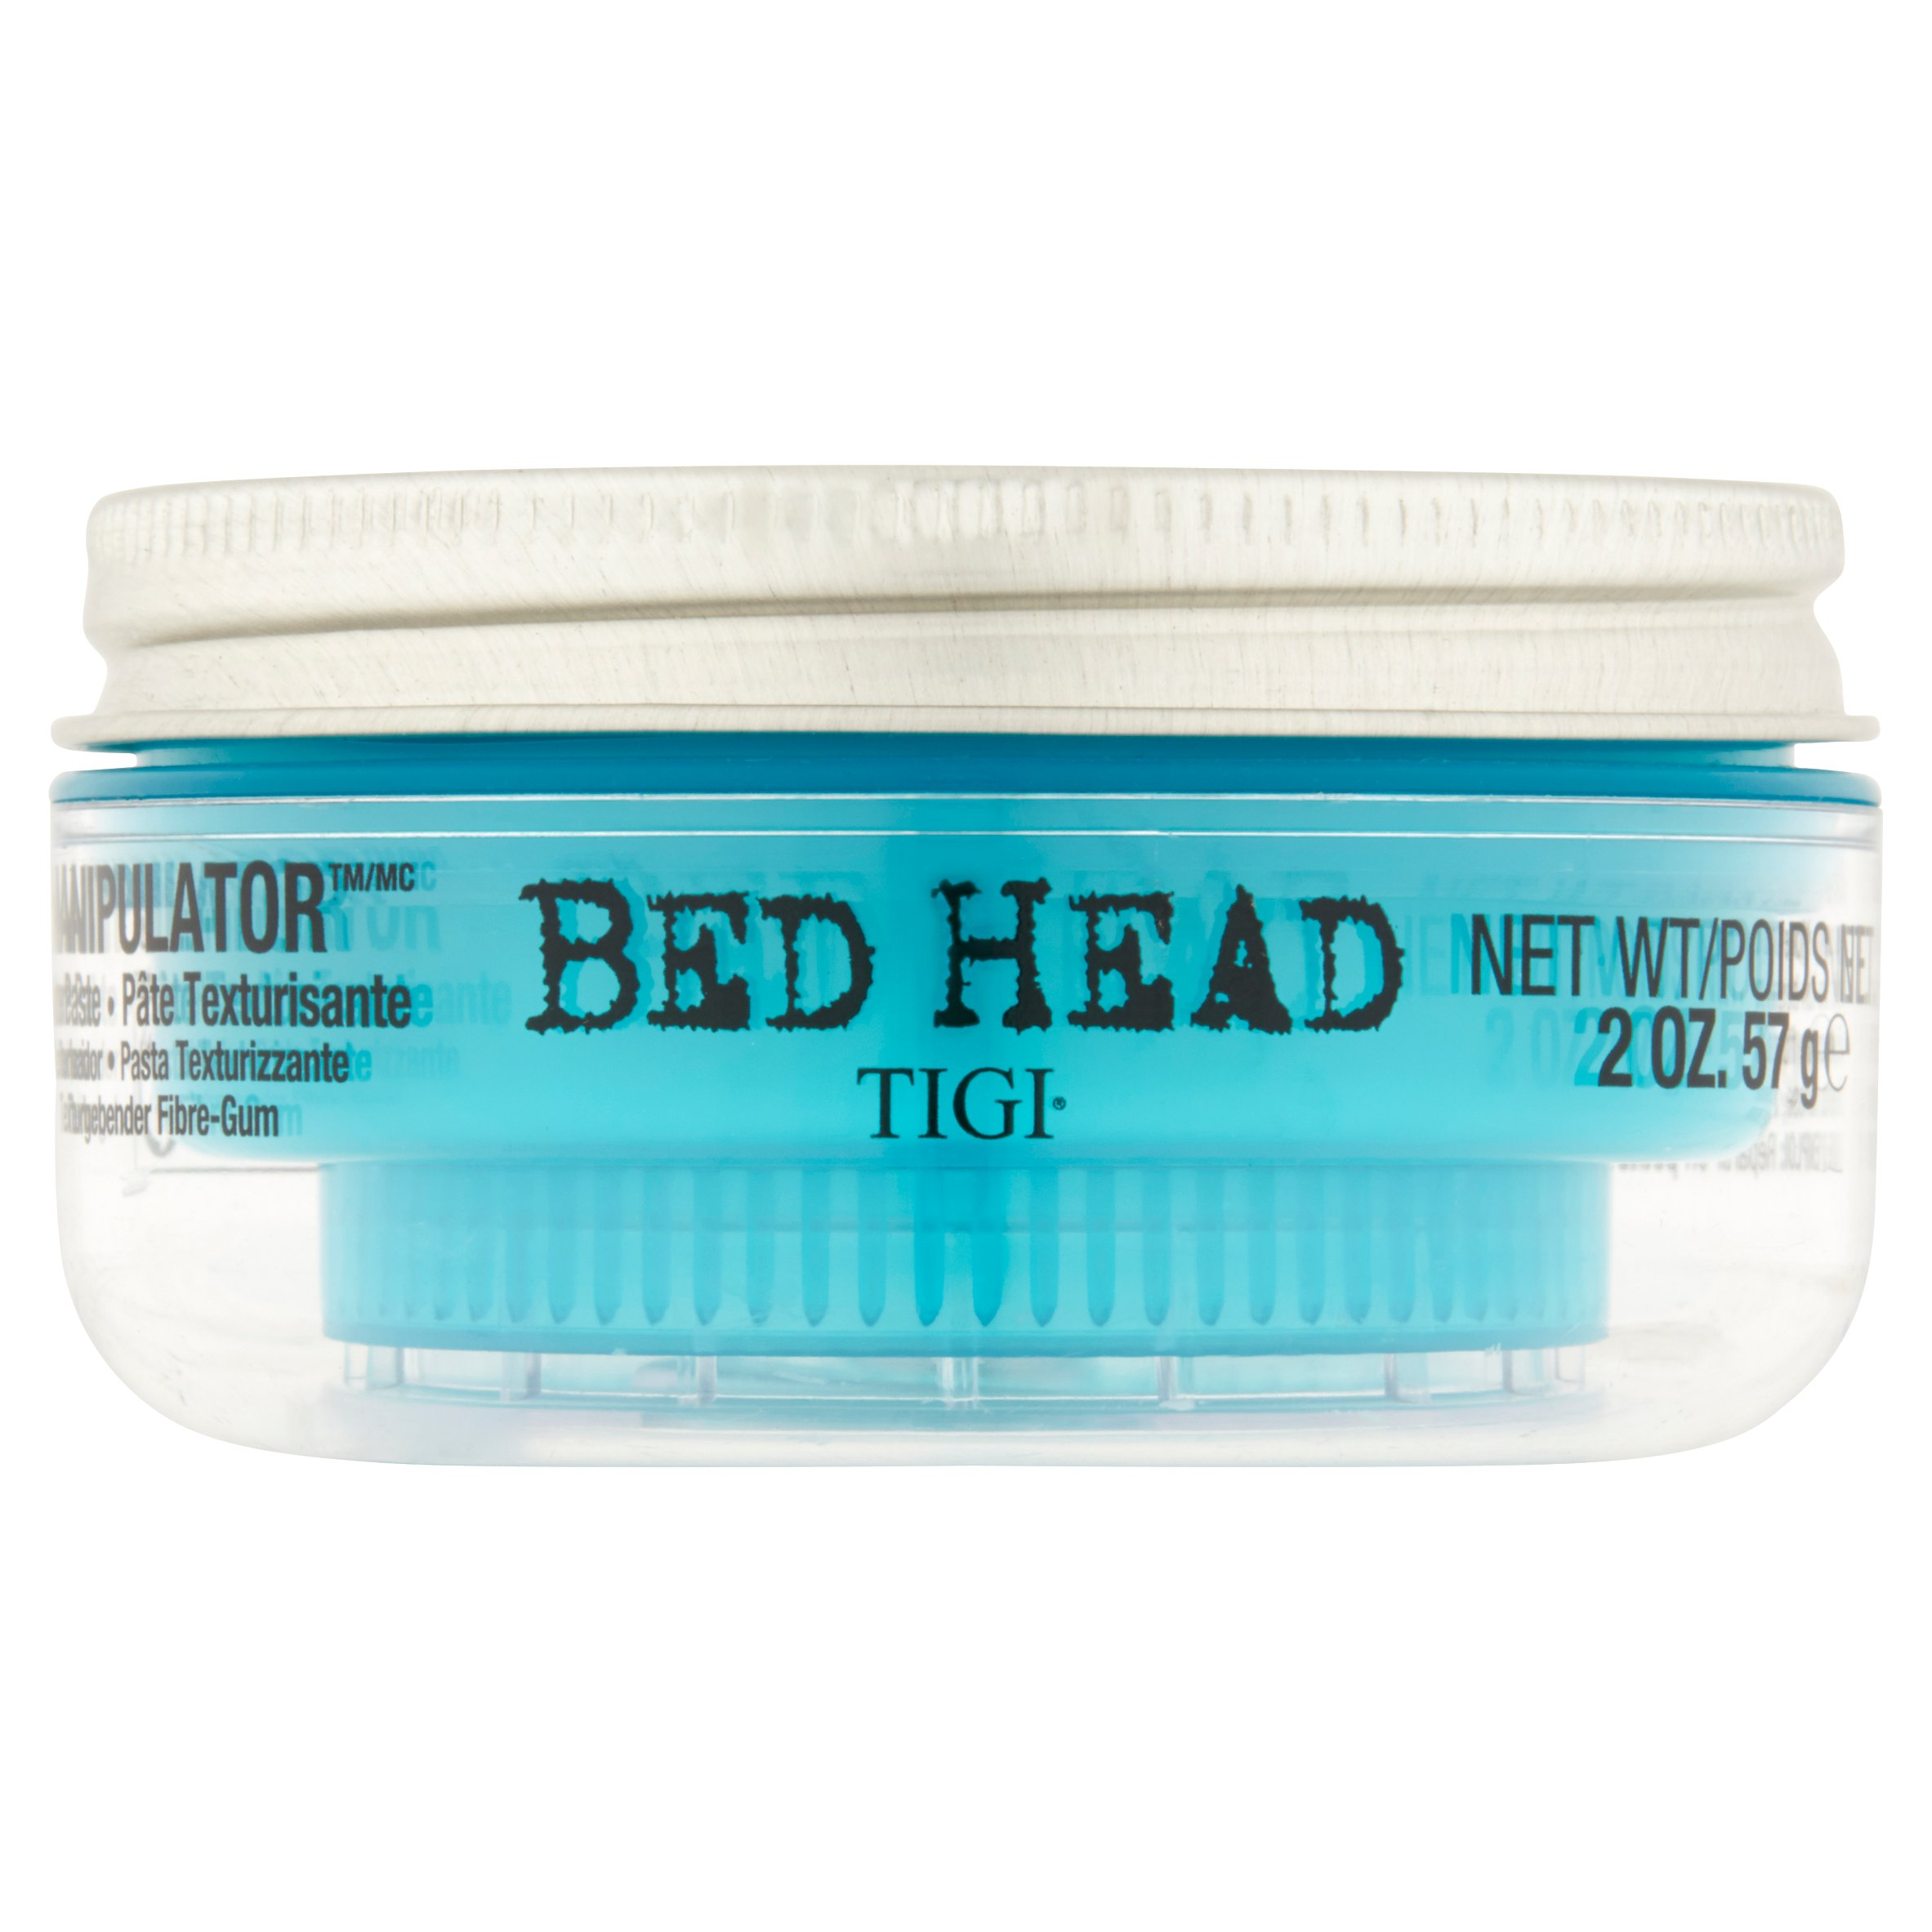 Tigi Bed Head Manipulator Texture Paste, 2 oz